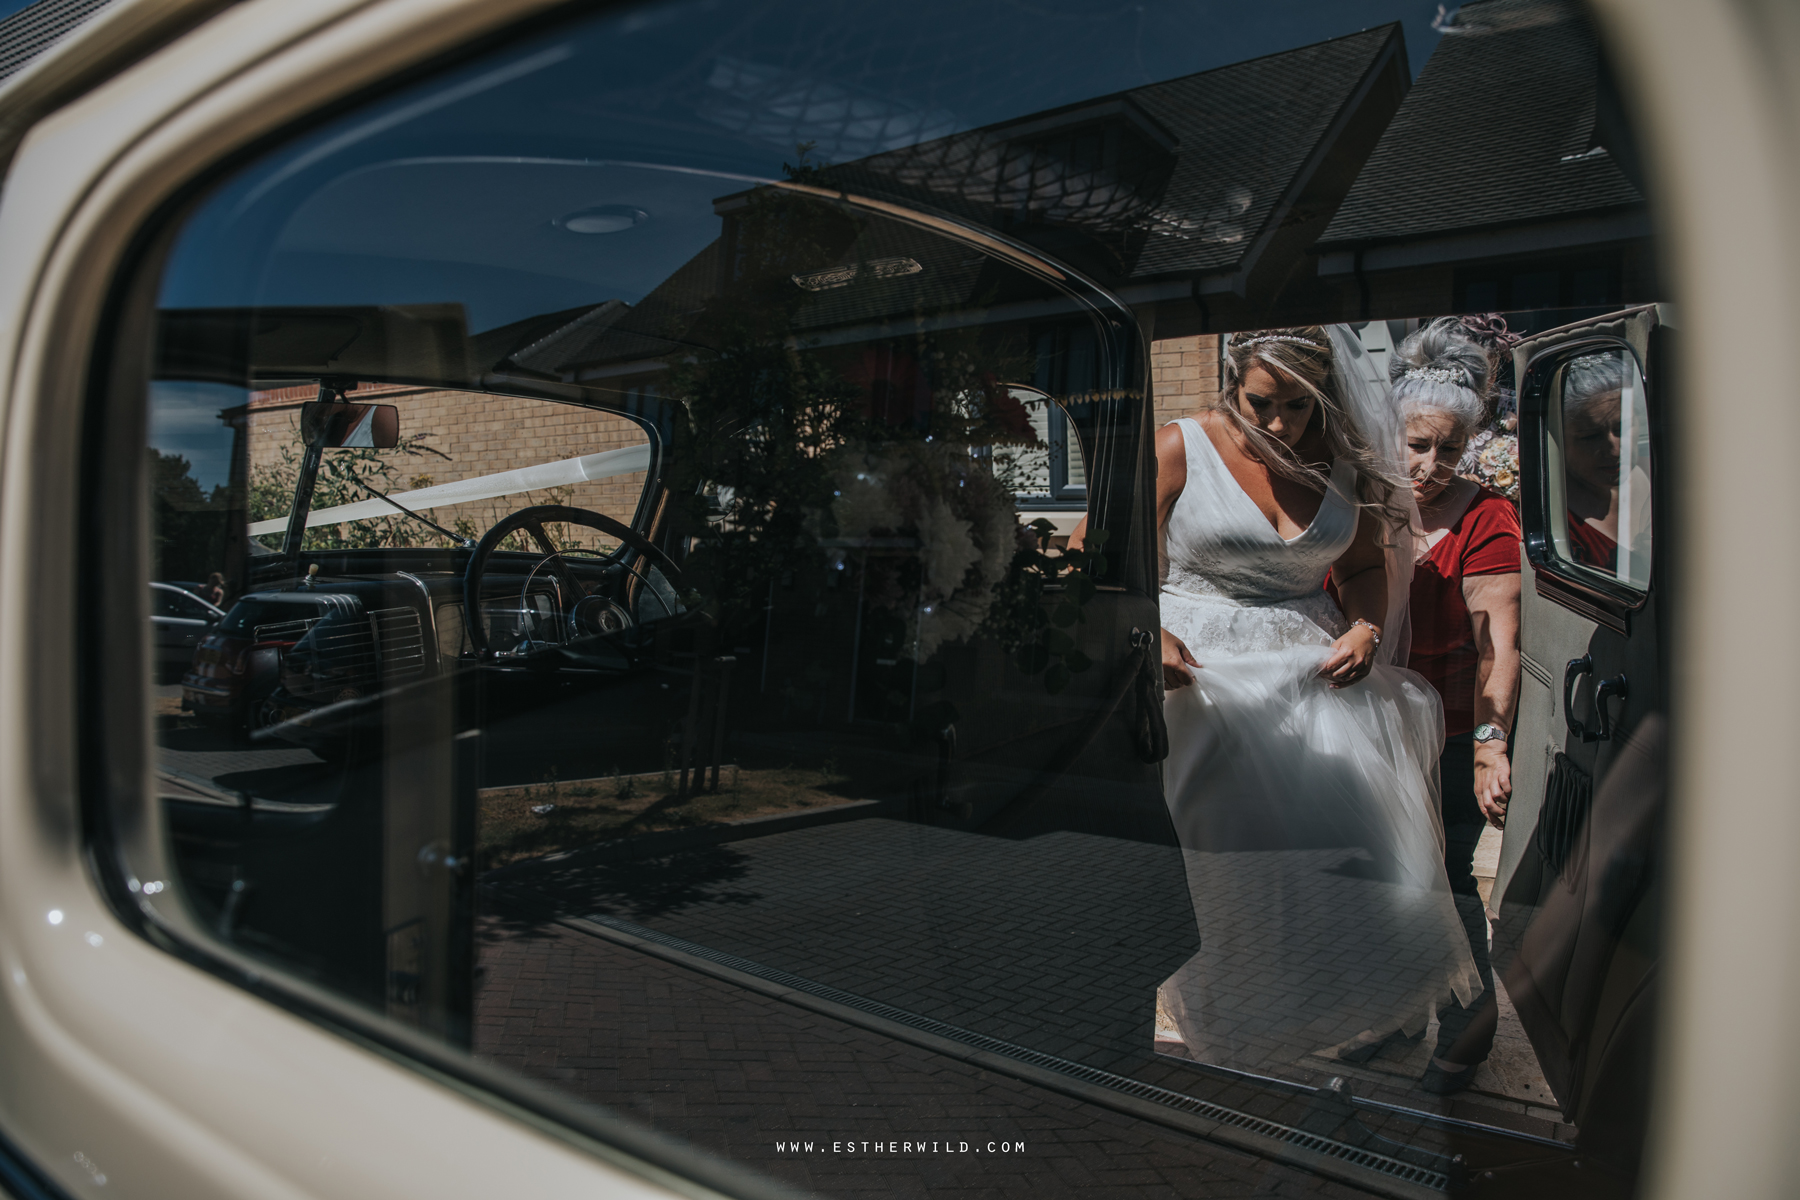 Swaffham_Wedding_Castle_Acre_Norfolk_Esther_Wild_Photographer_Wedding_Photography_3R8A0521.jpg